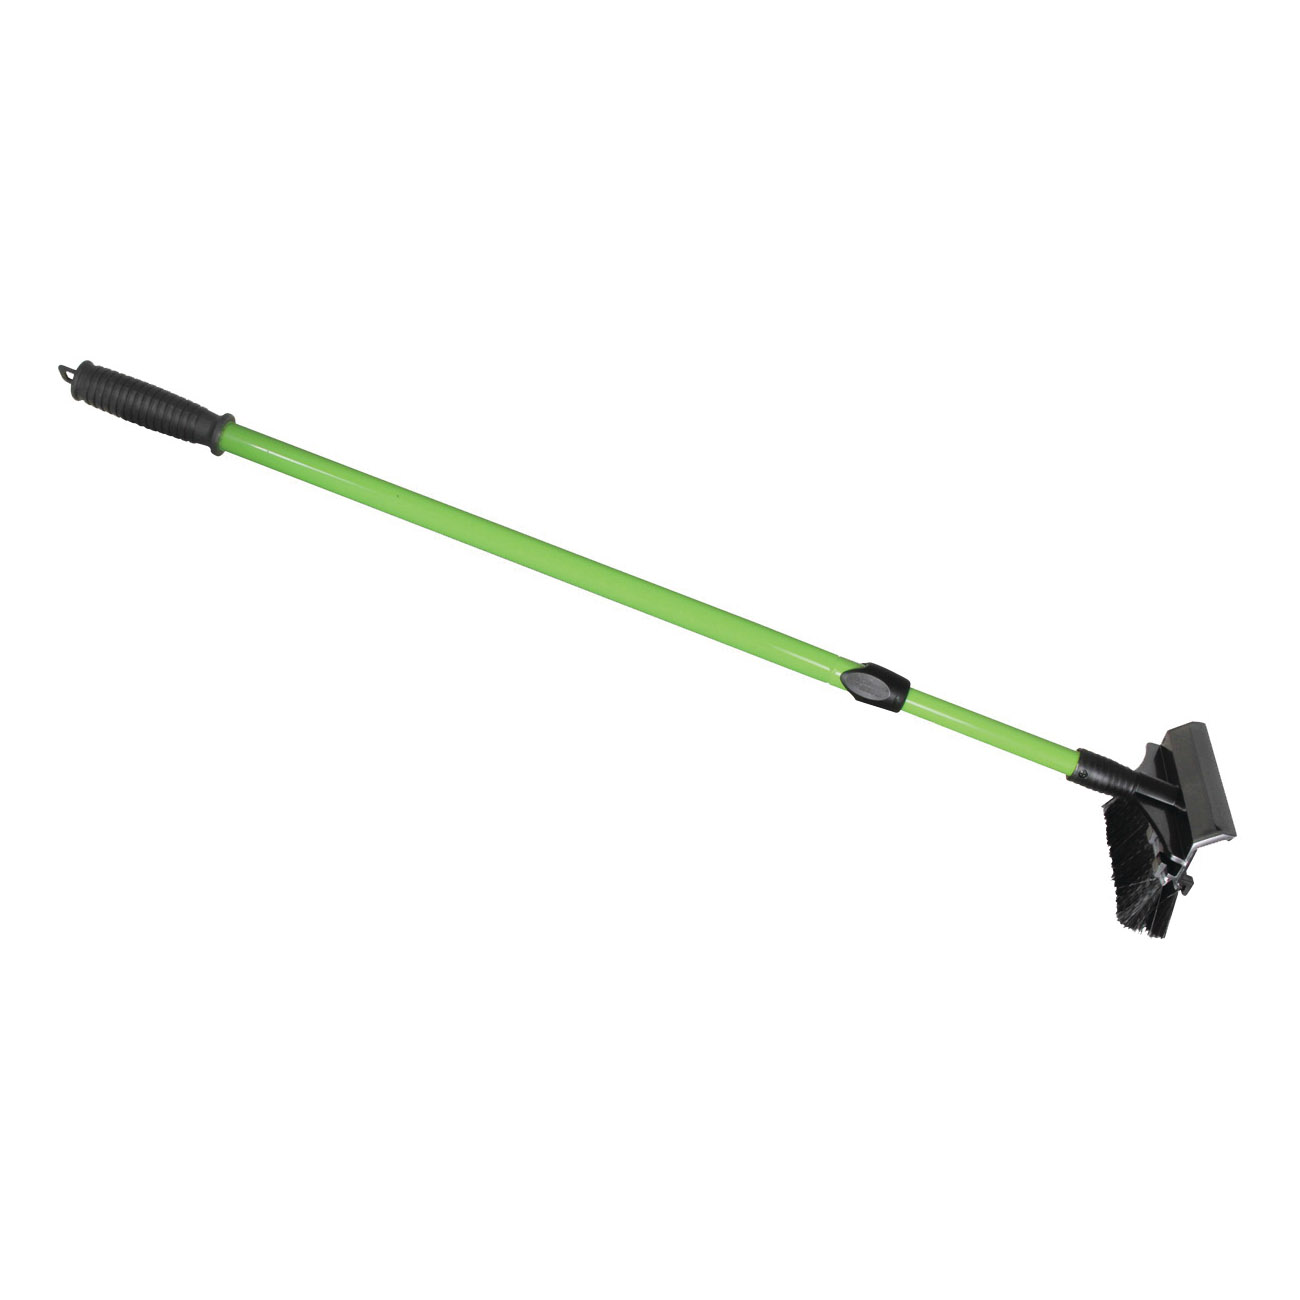 Picture of SubZero 2610XB Extender Snow Broom, 48 in OAL, Assorted